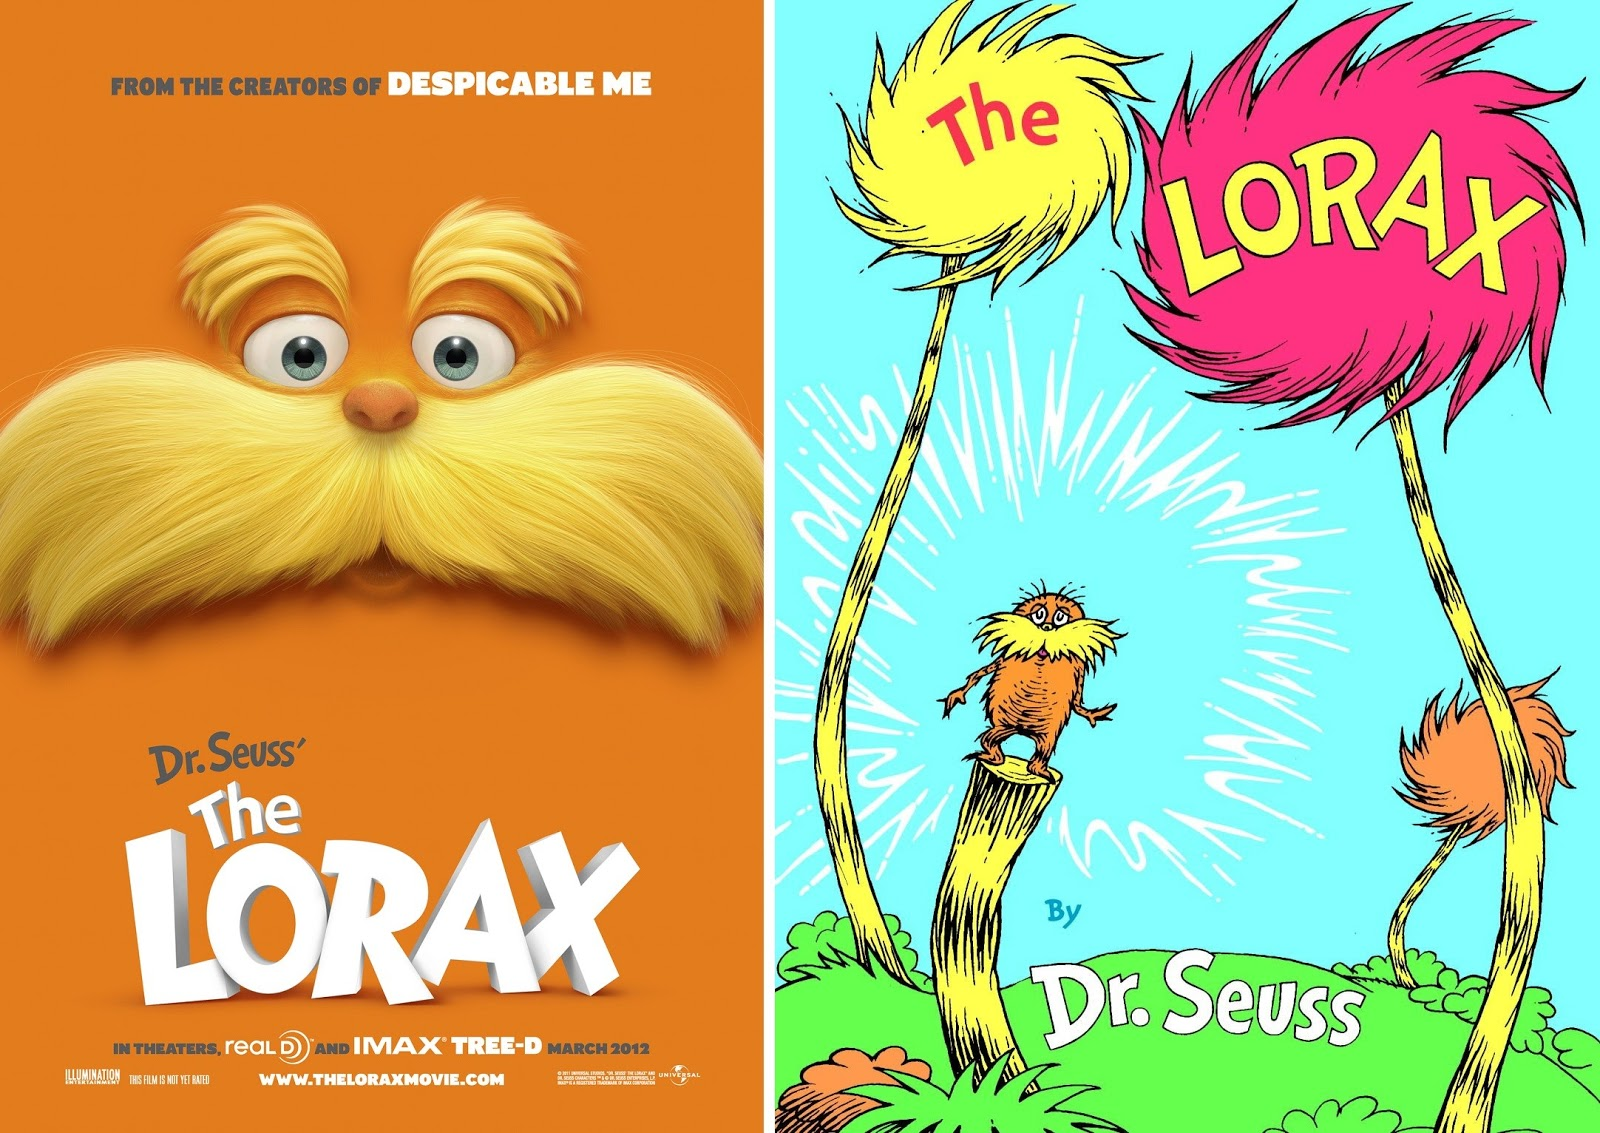 photograph relating to Dr.seuss Book Covers Printable identify 100+ Again Dr Seuss Addresses yasminroohi